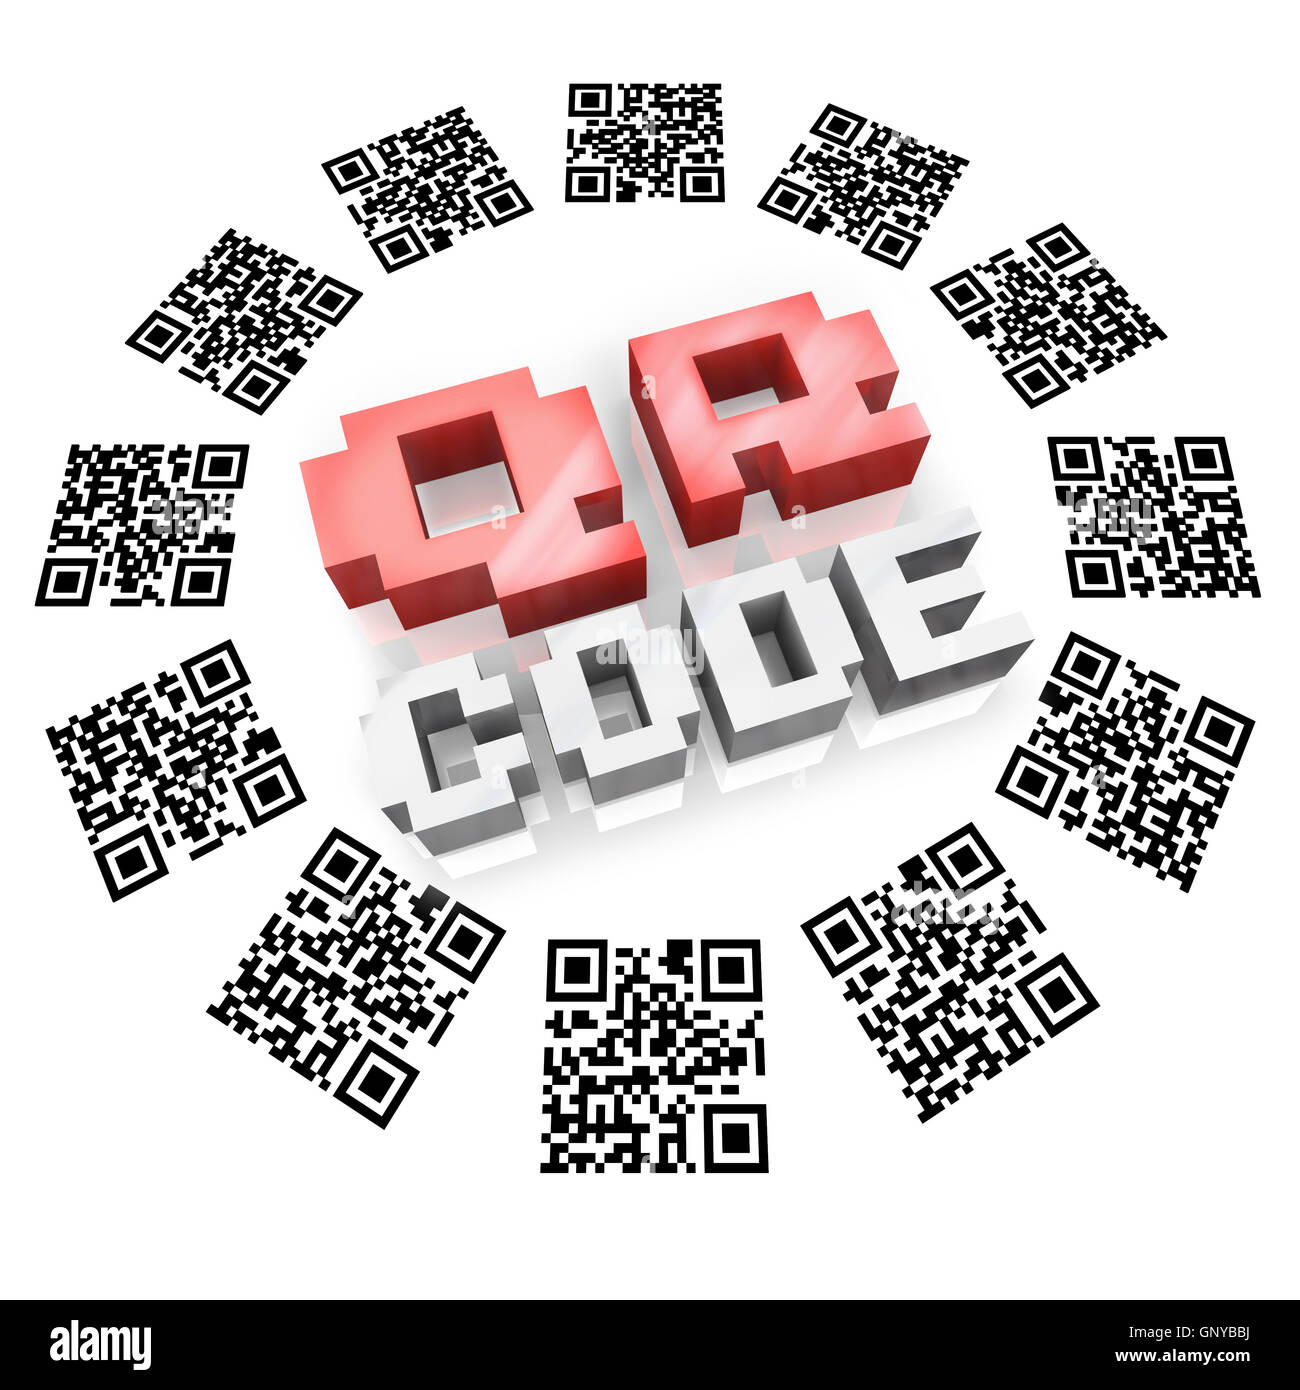 QR Codes in Ring Scan for Product Information - Stock Image